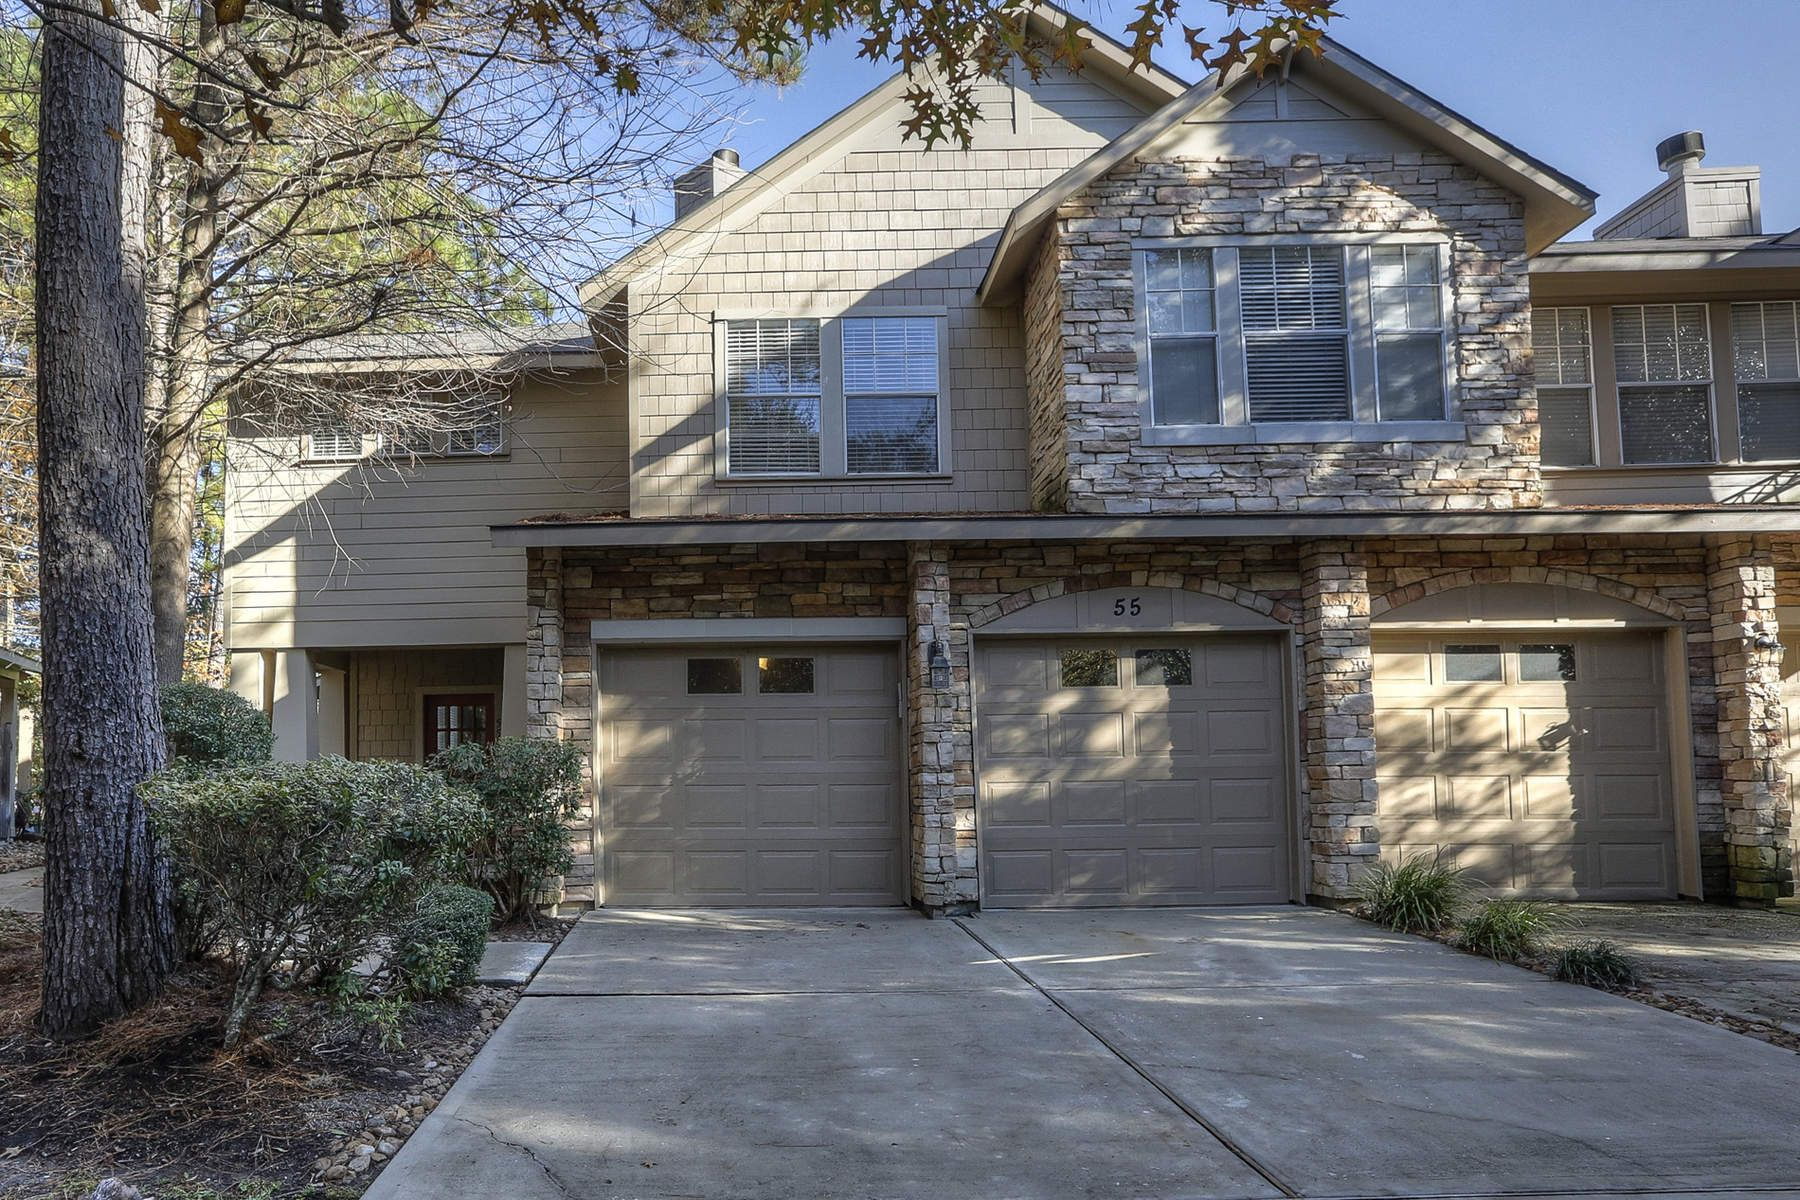 Townhouse for Sale at 55 Scarlet Woods Court 55 Scarlet Woods Court Spring, Texas 77380 United States